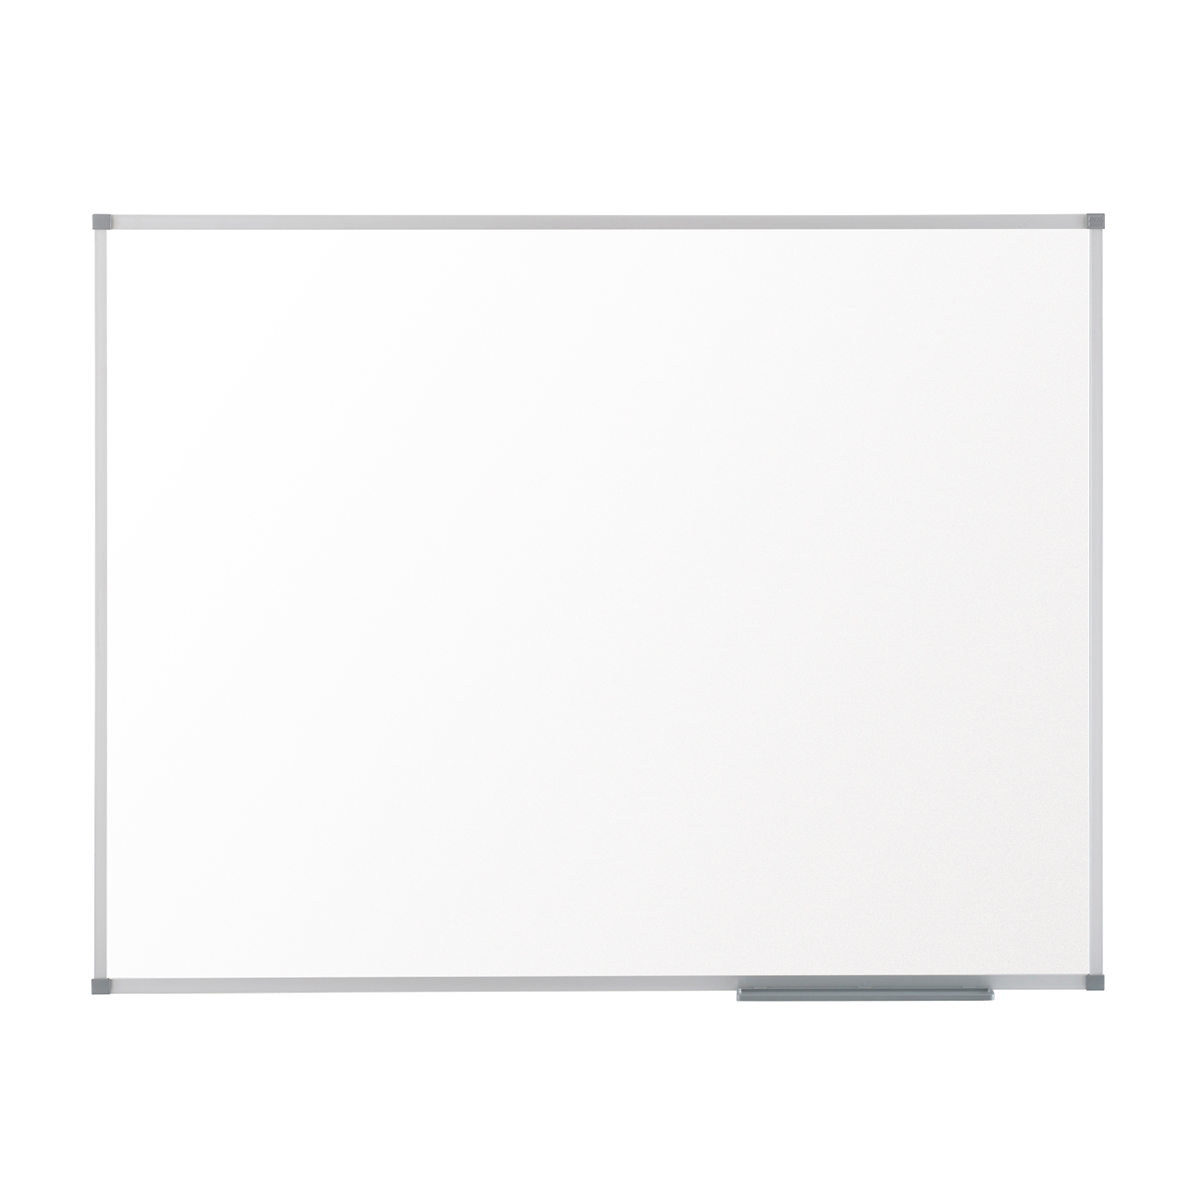 Nobo 1905206 Basic Melamine Non Magnetic Whiteboard with Basic Trim 2400 x 1200mm